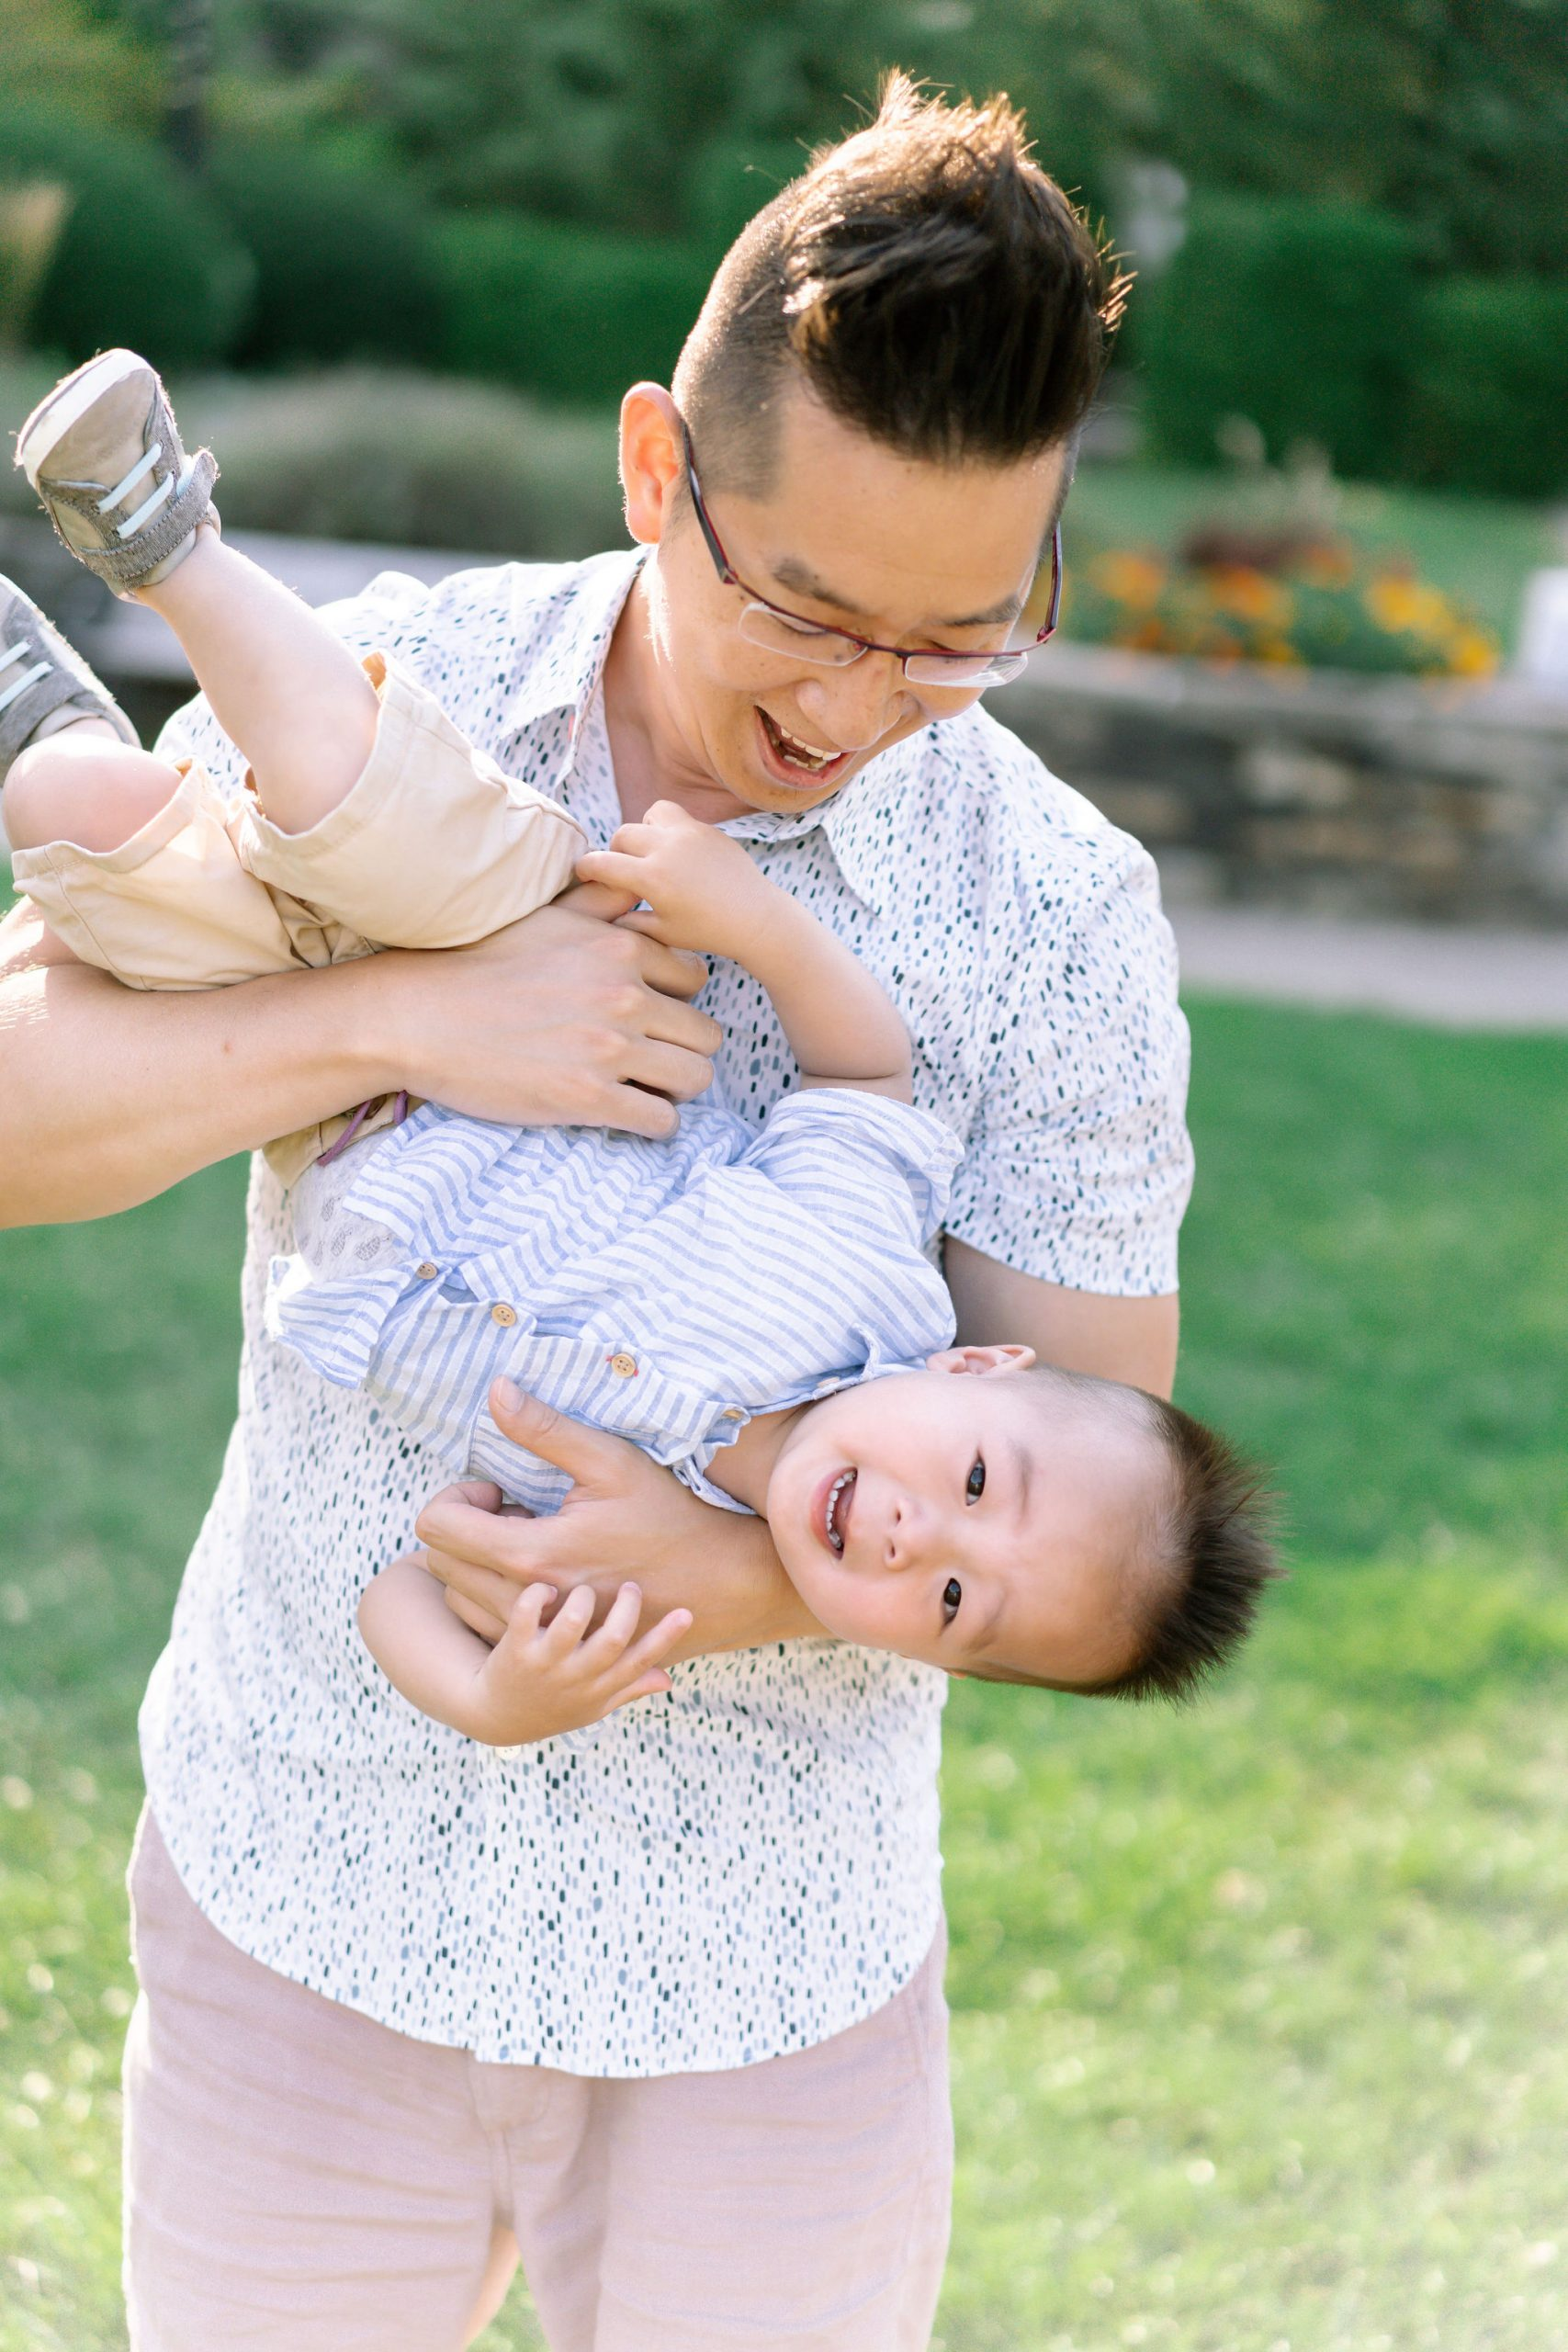 Father holding his son upside while laughing